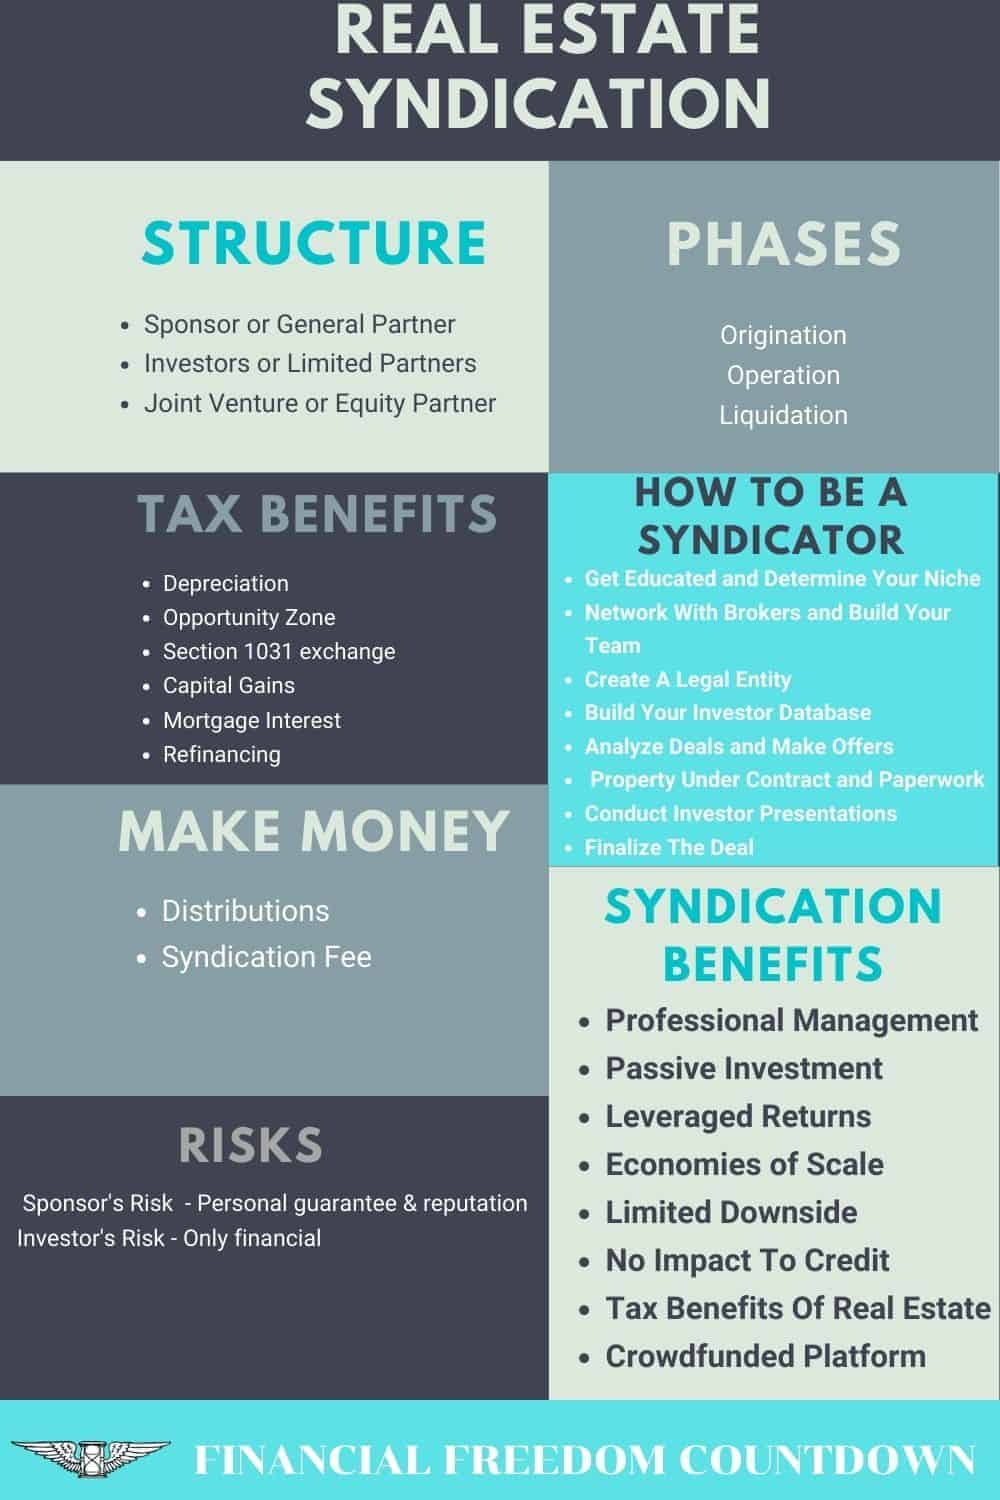 Real estate syndication provides the benefits of real estate without needing your day to day involvement. Learn the advantages, risks, and how to get started.